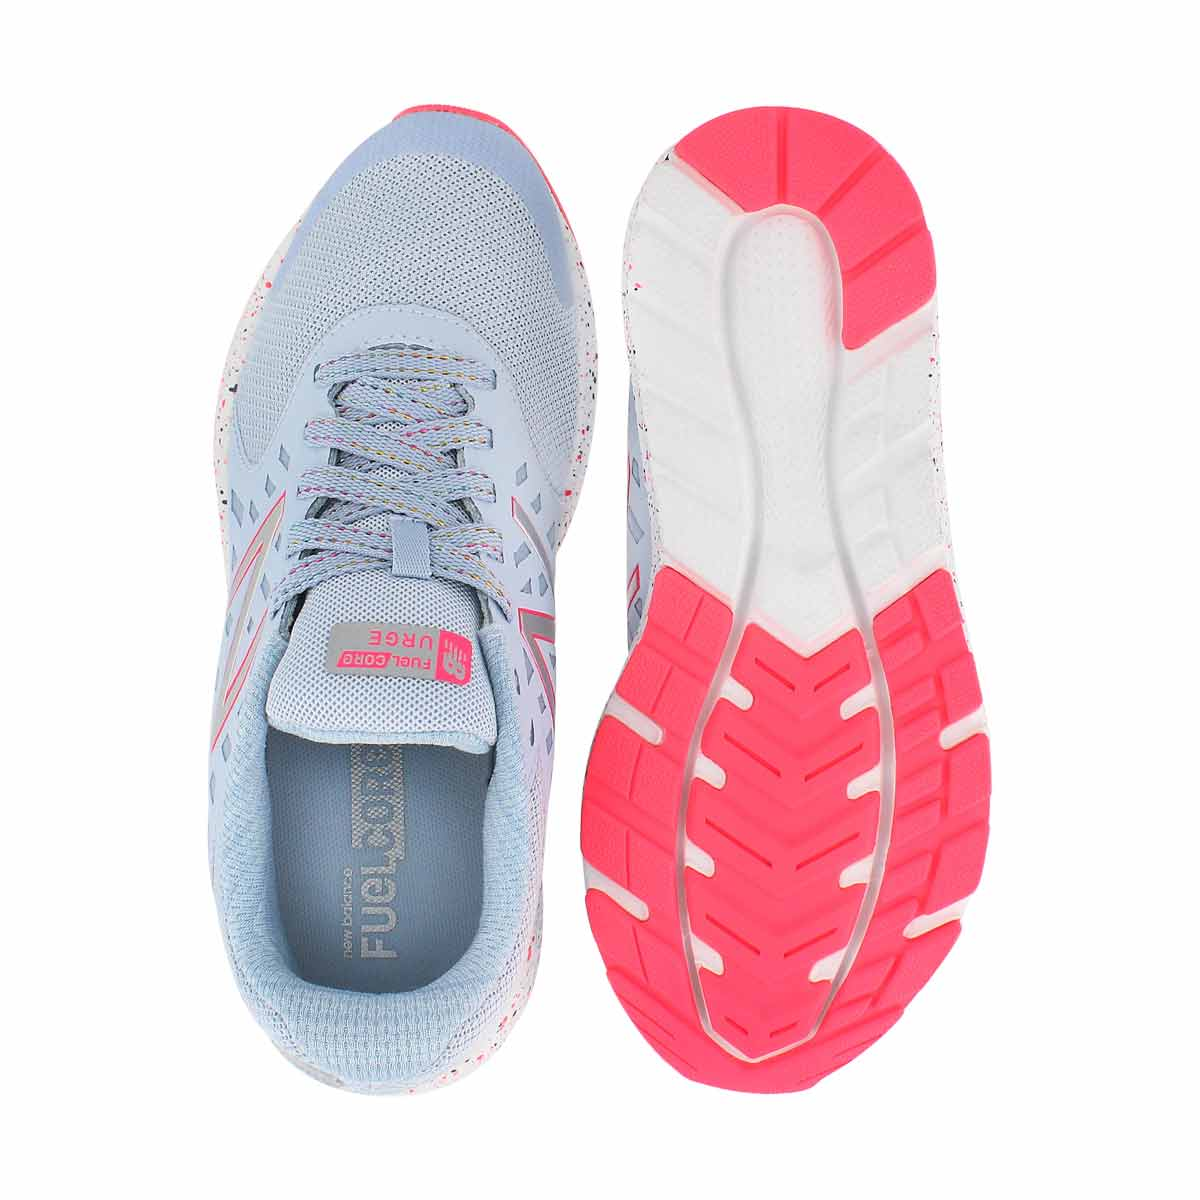 Grls Urge ice blue/pink lace up sneaker